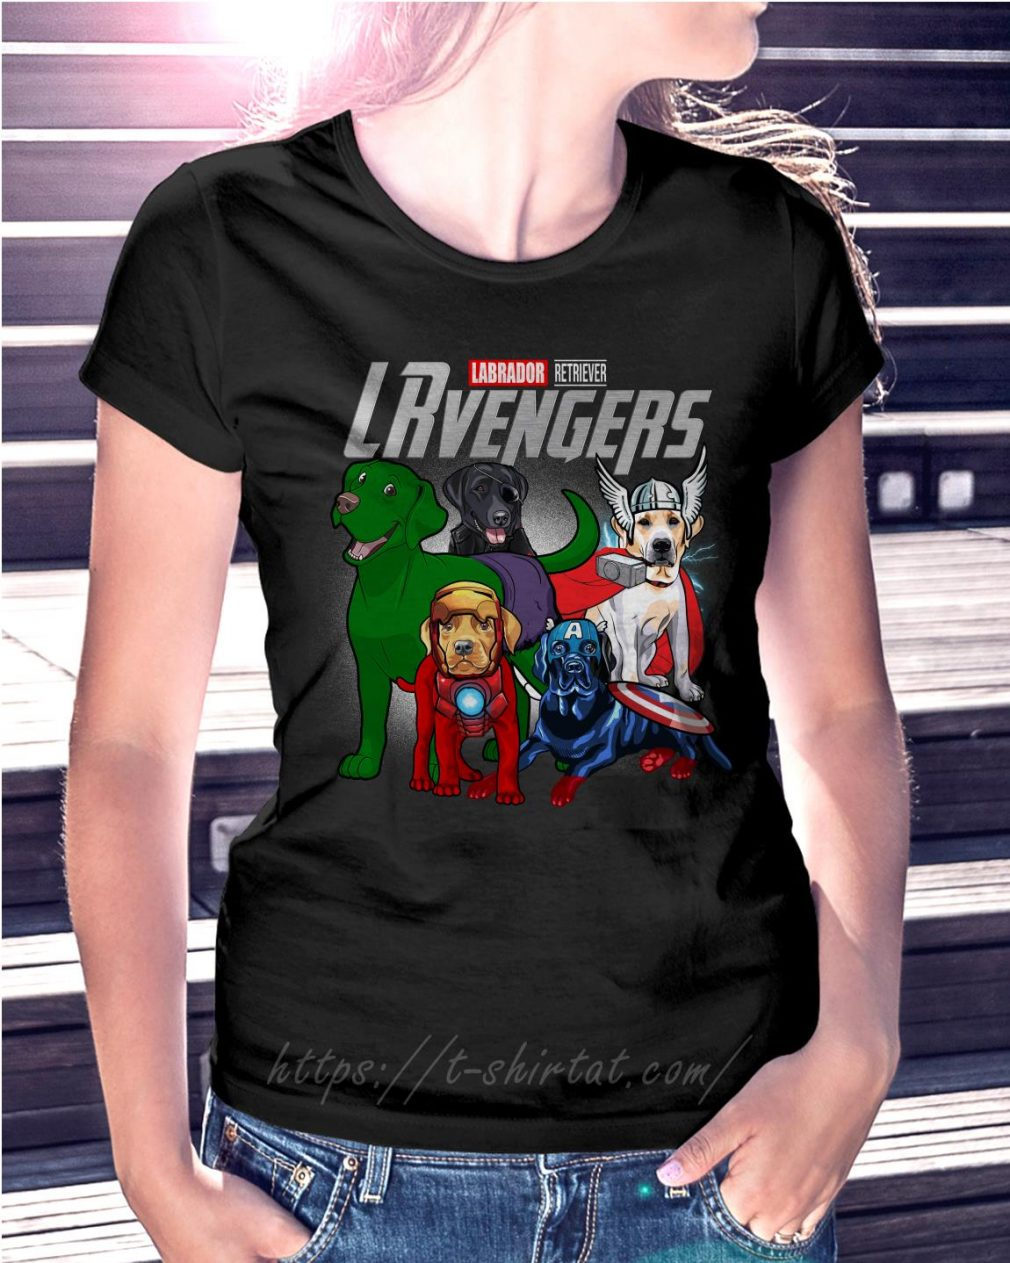 Marvel Labrador Retriever LRvengers